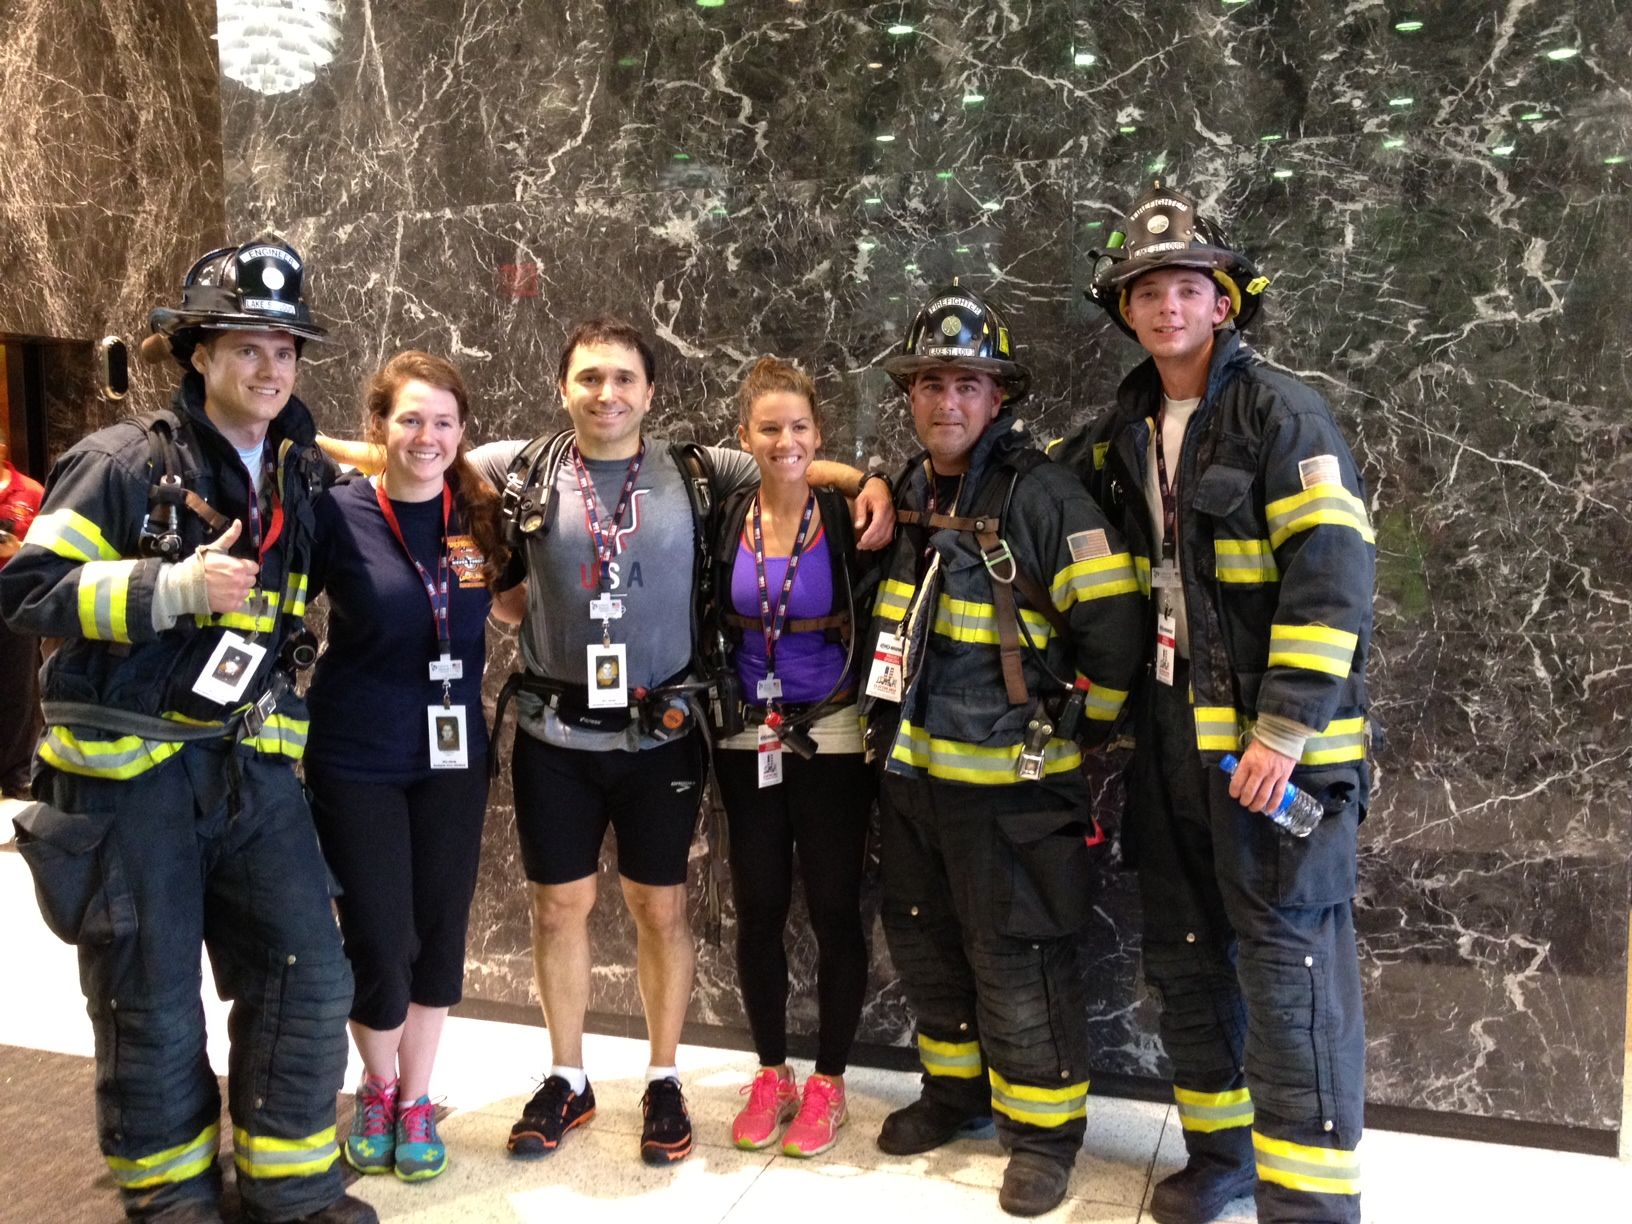 9-11 Memorial Stair Climb Fourteen